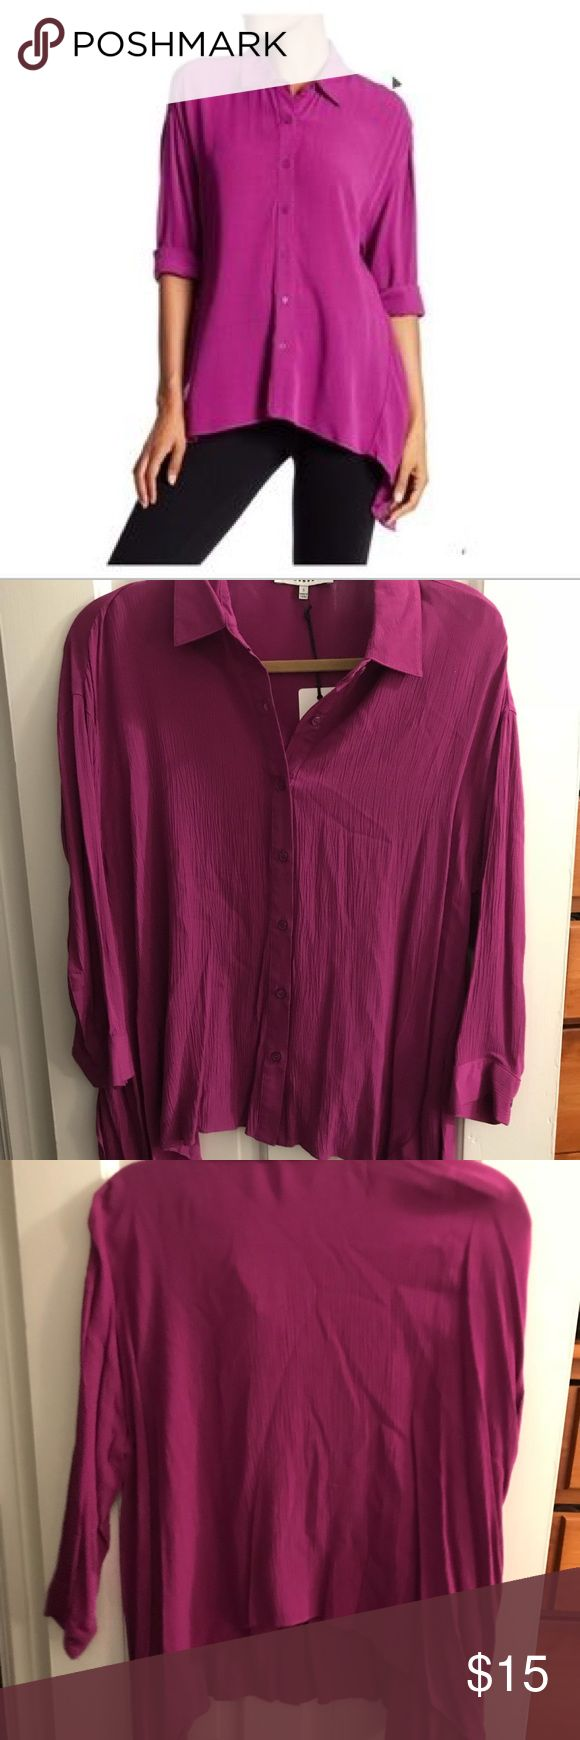 NWT Ro & De Gauze Sharkbite Hem Blouse Brand new never worn! Perfect condition!  🌼Thank you for looking!  🌼I ship within 2 days shipping excluding holidays 🌼I do not trade! 🌼I only accept offers through the offer button! 🌼Thank you for shopping and feel free to ask any questions! 🚭Smoke free home! Ro & De Tops Blouses